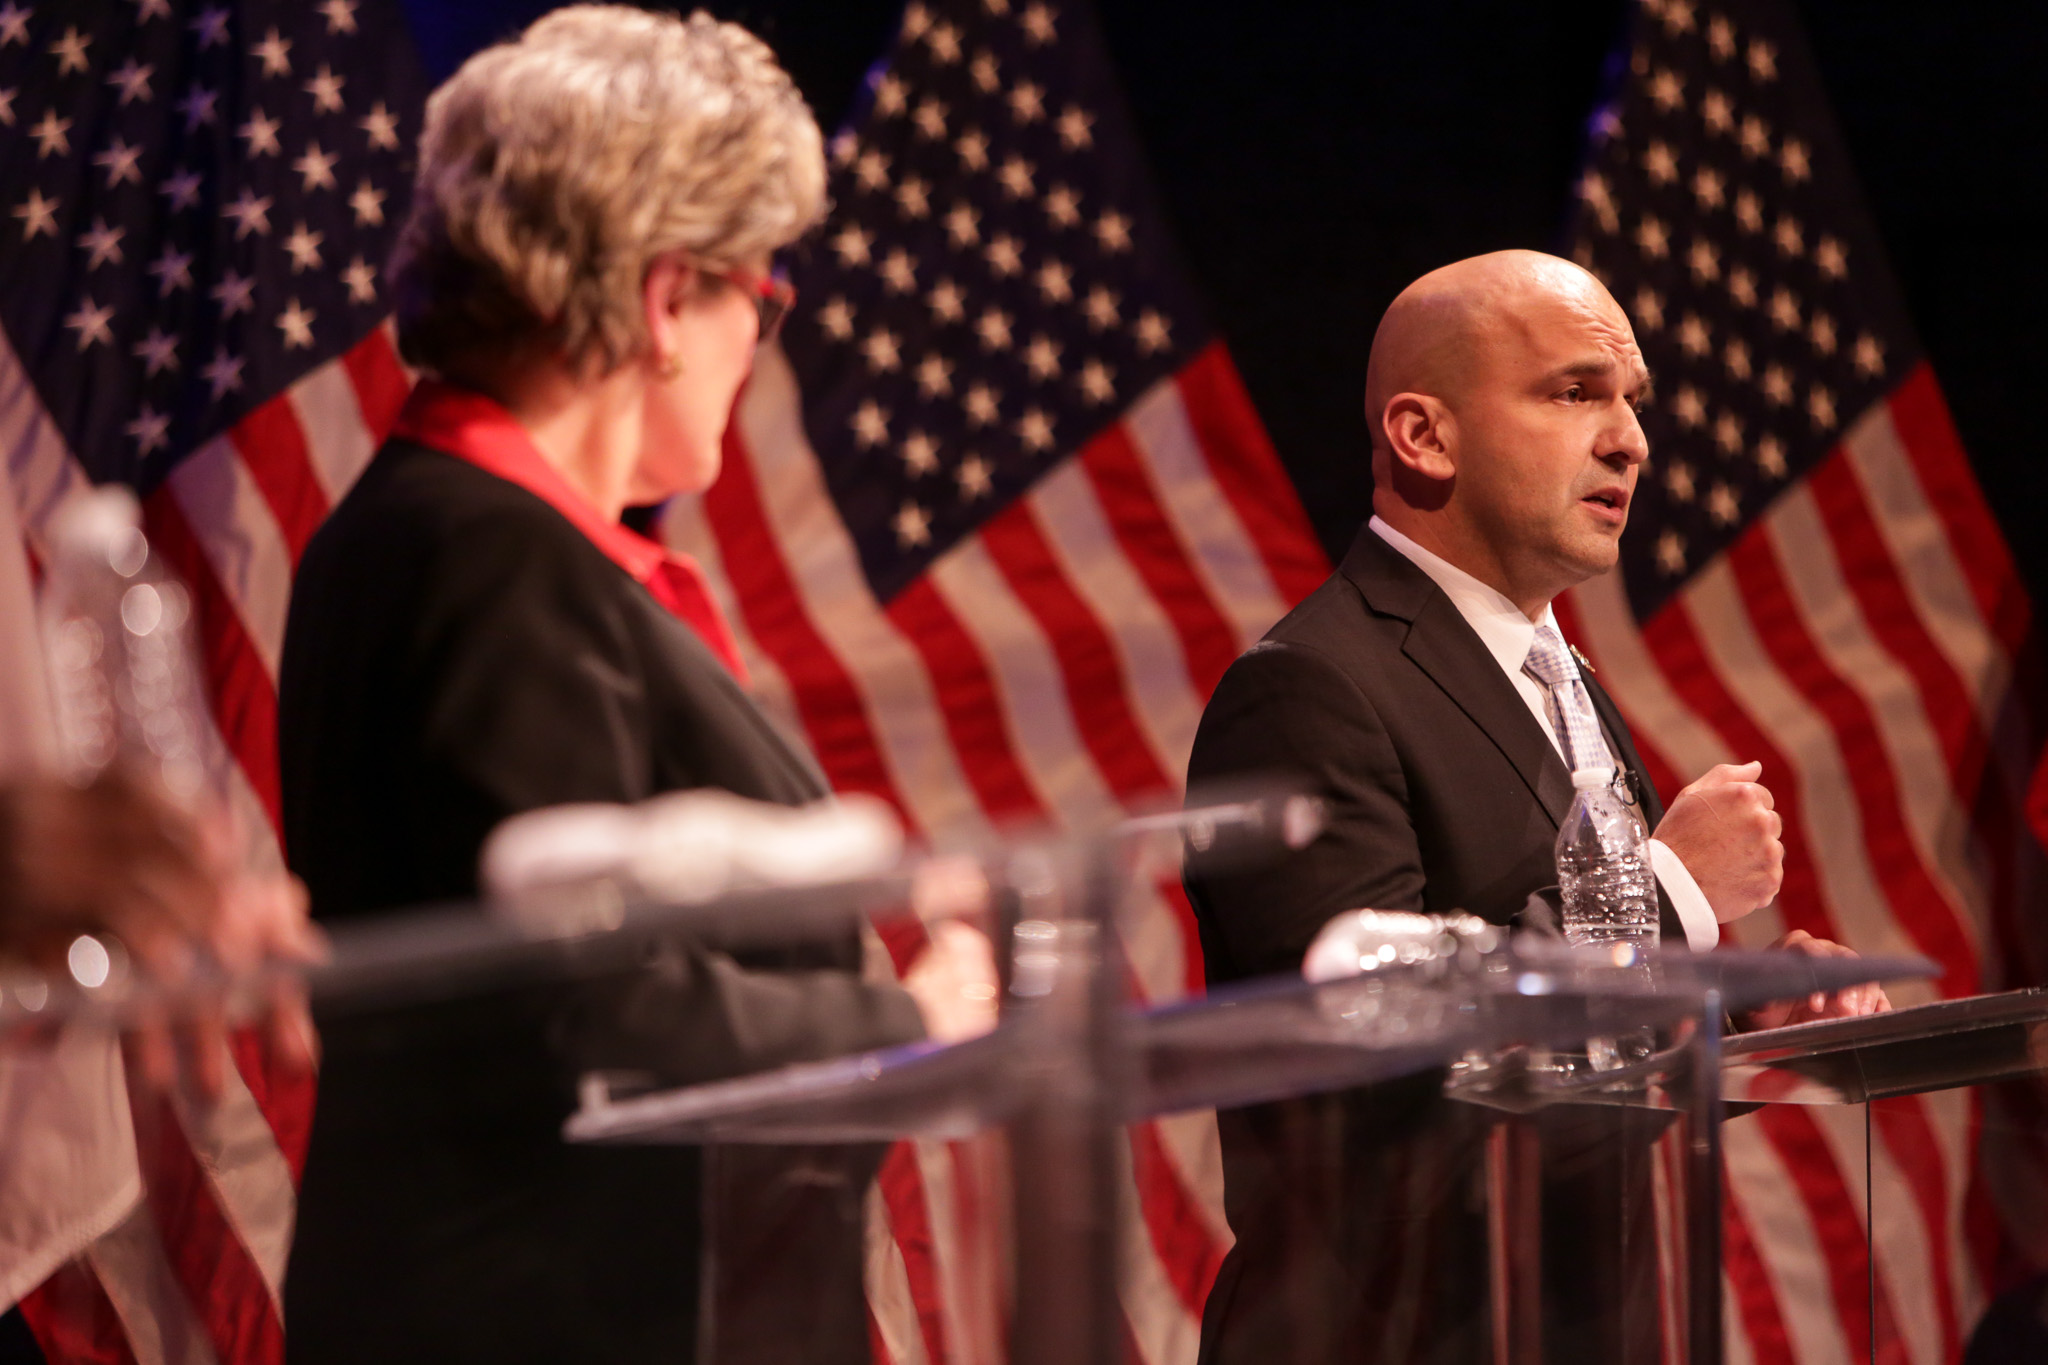 Bexar County Sheriff candidate Javier Salazar gives his closing statement. Photo by Scott Ball.